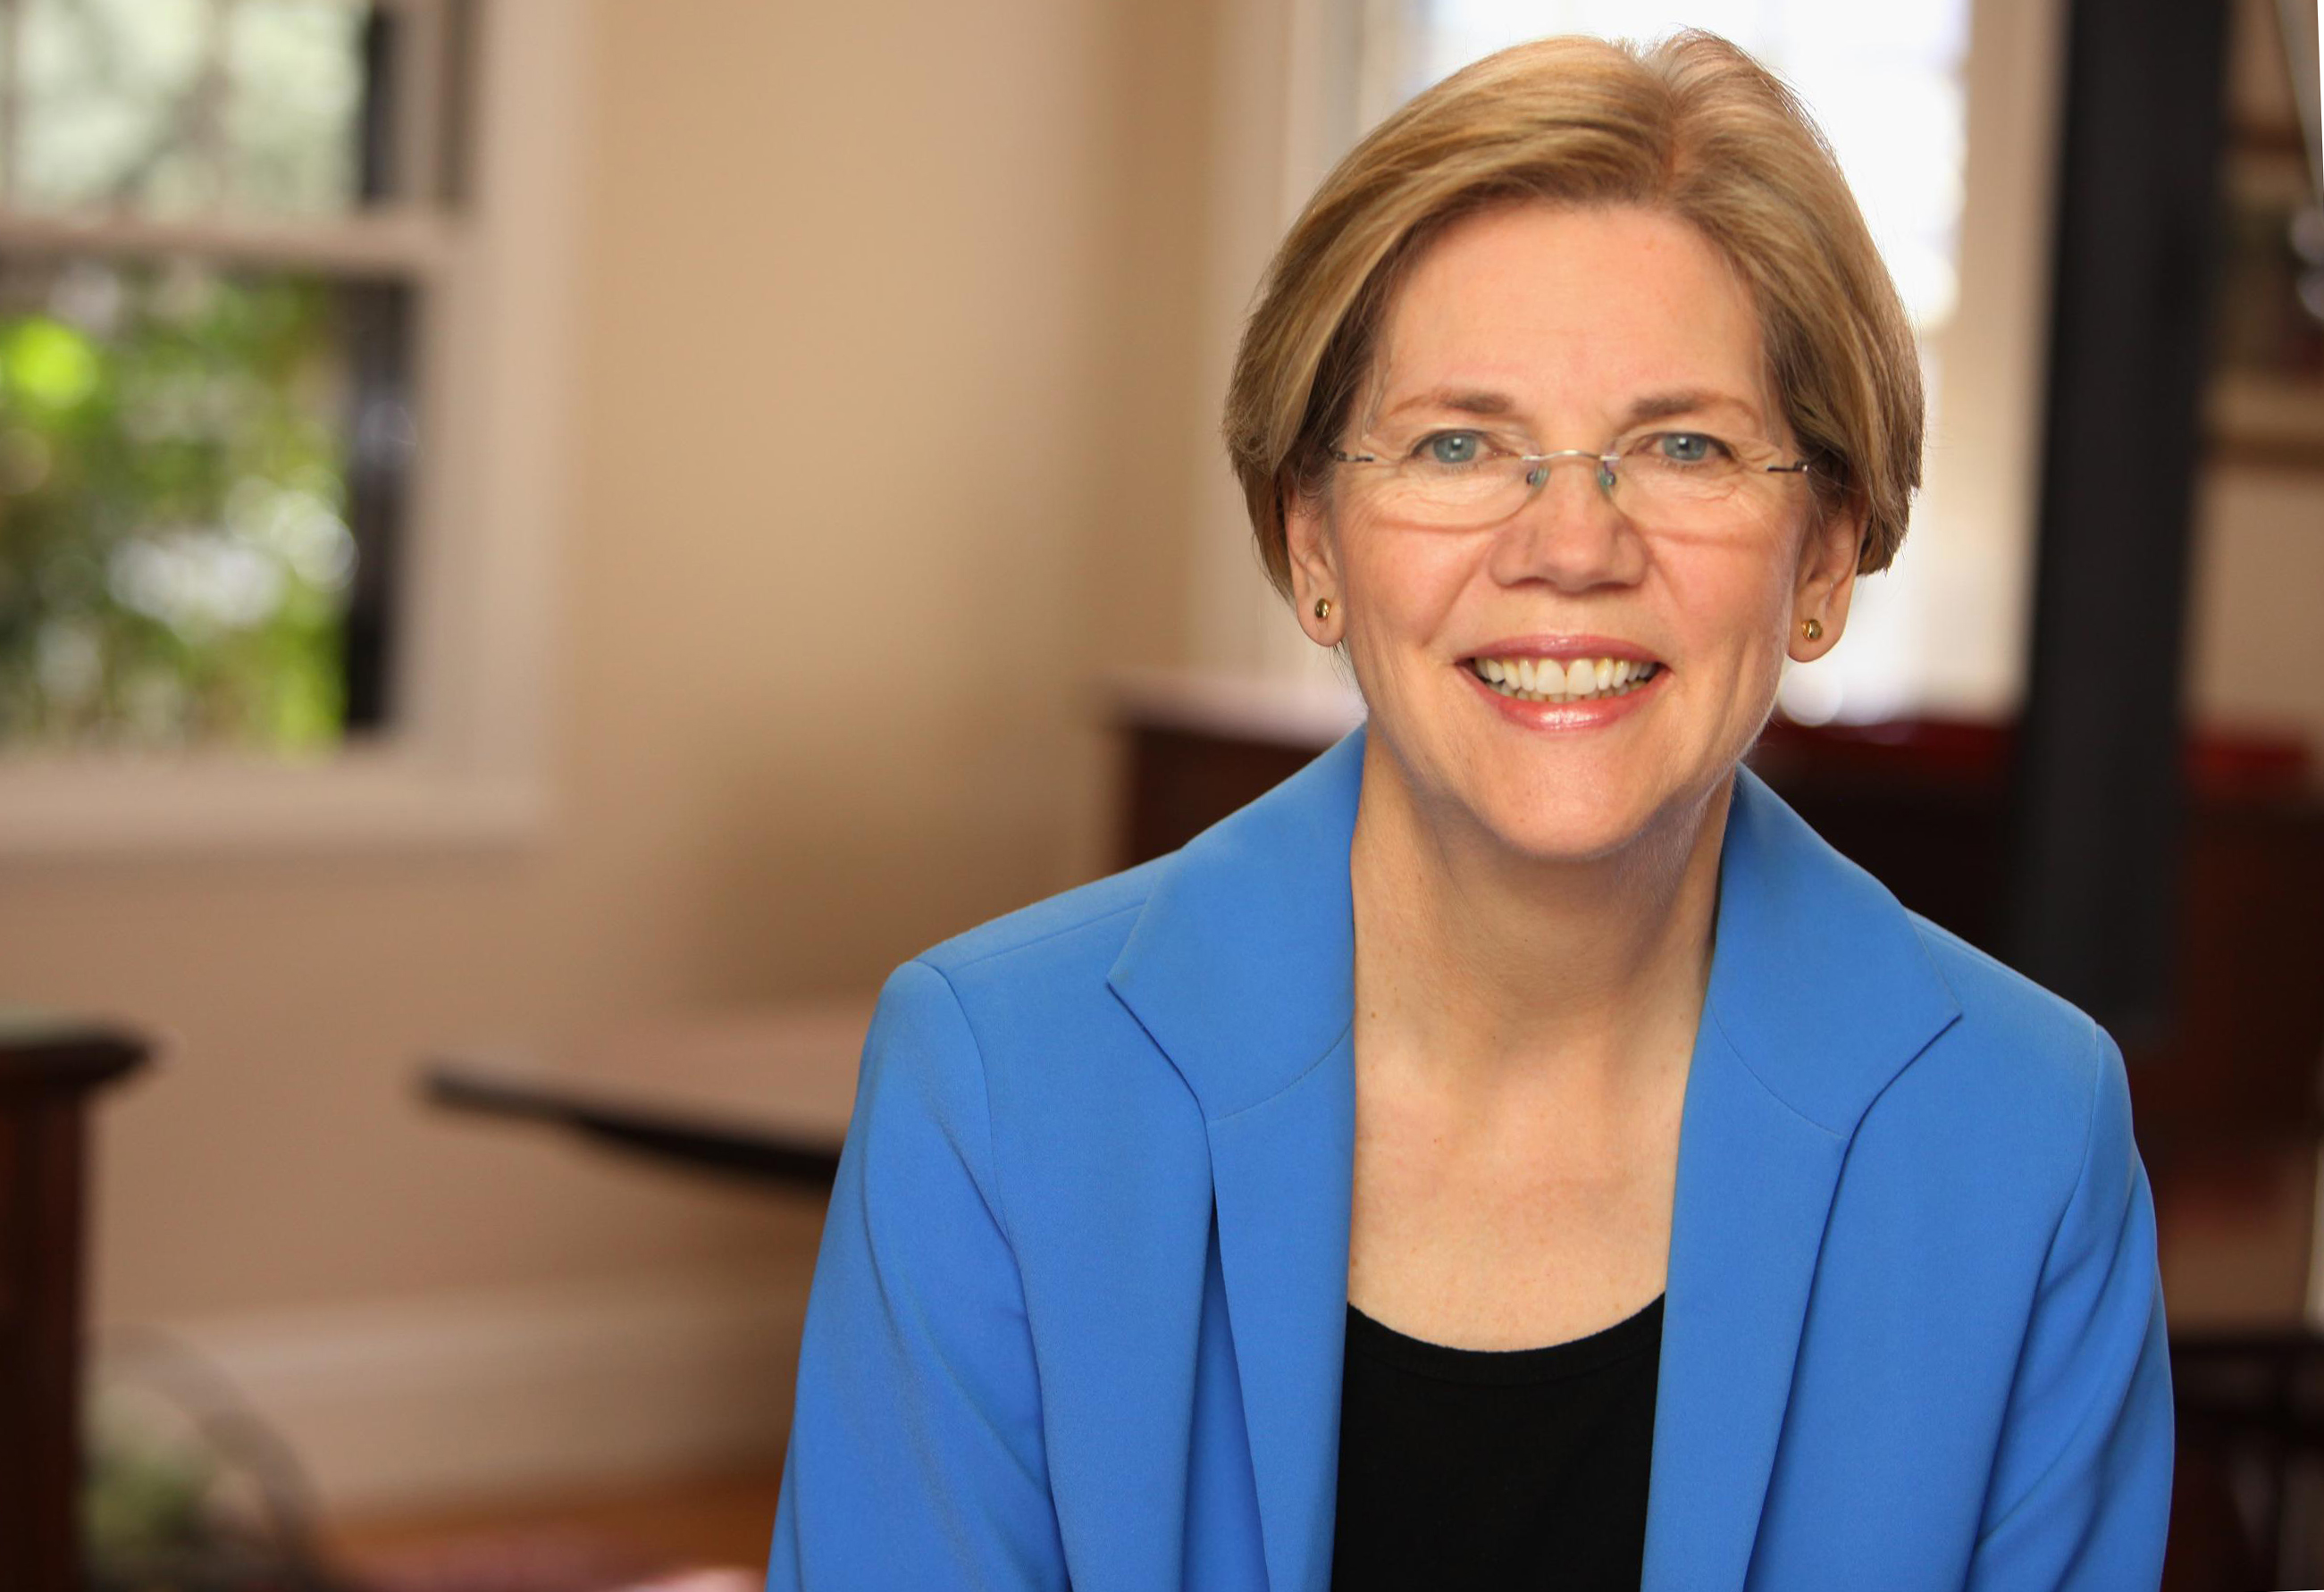 Elizabeth Warren and Donald Trump agree on something important